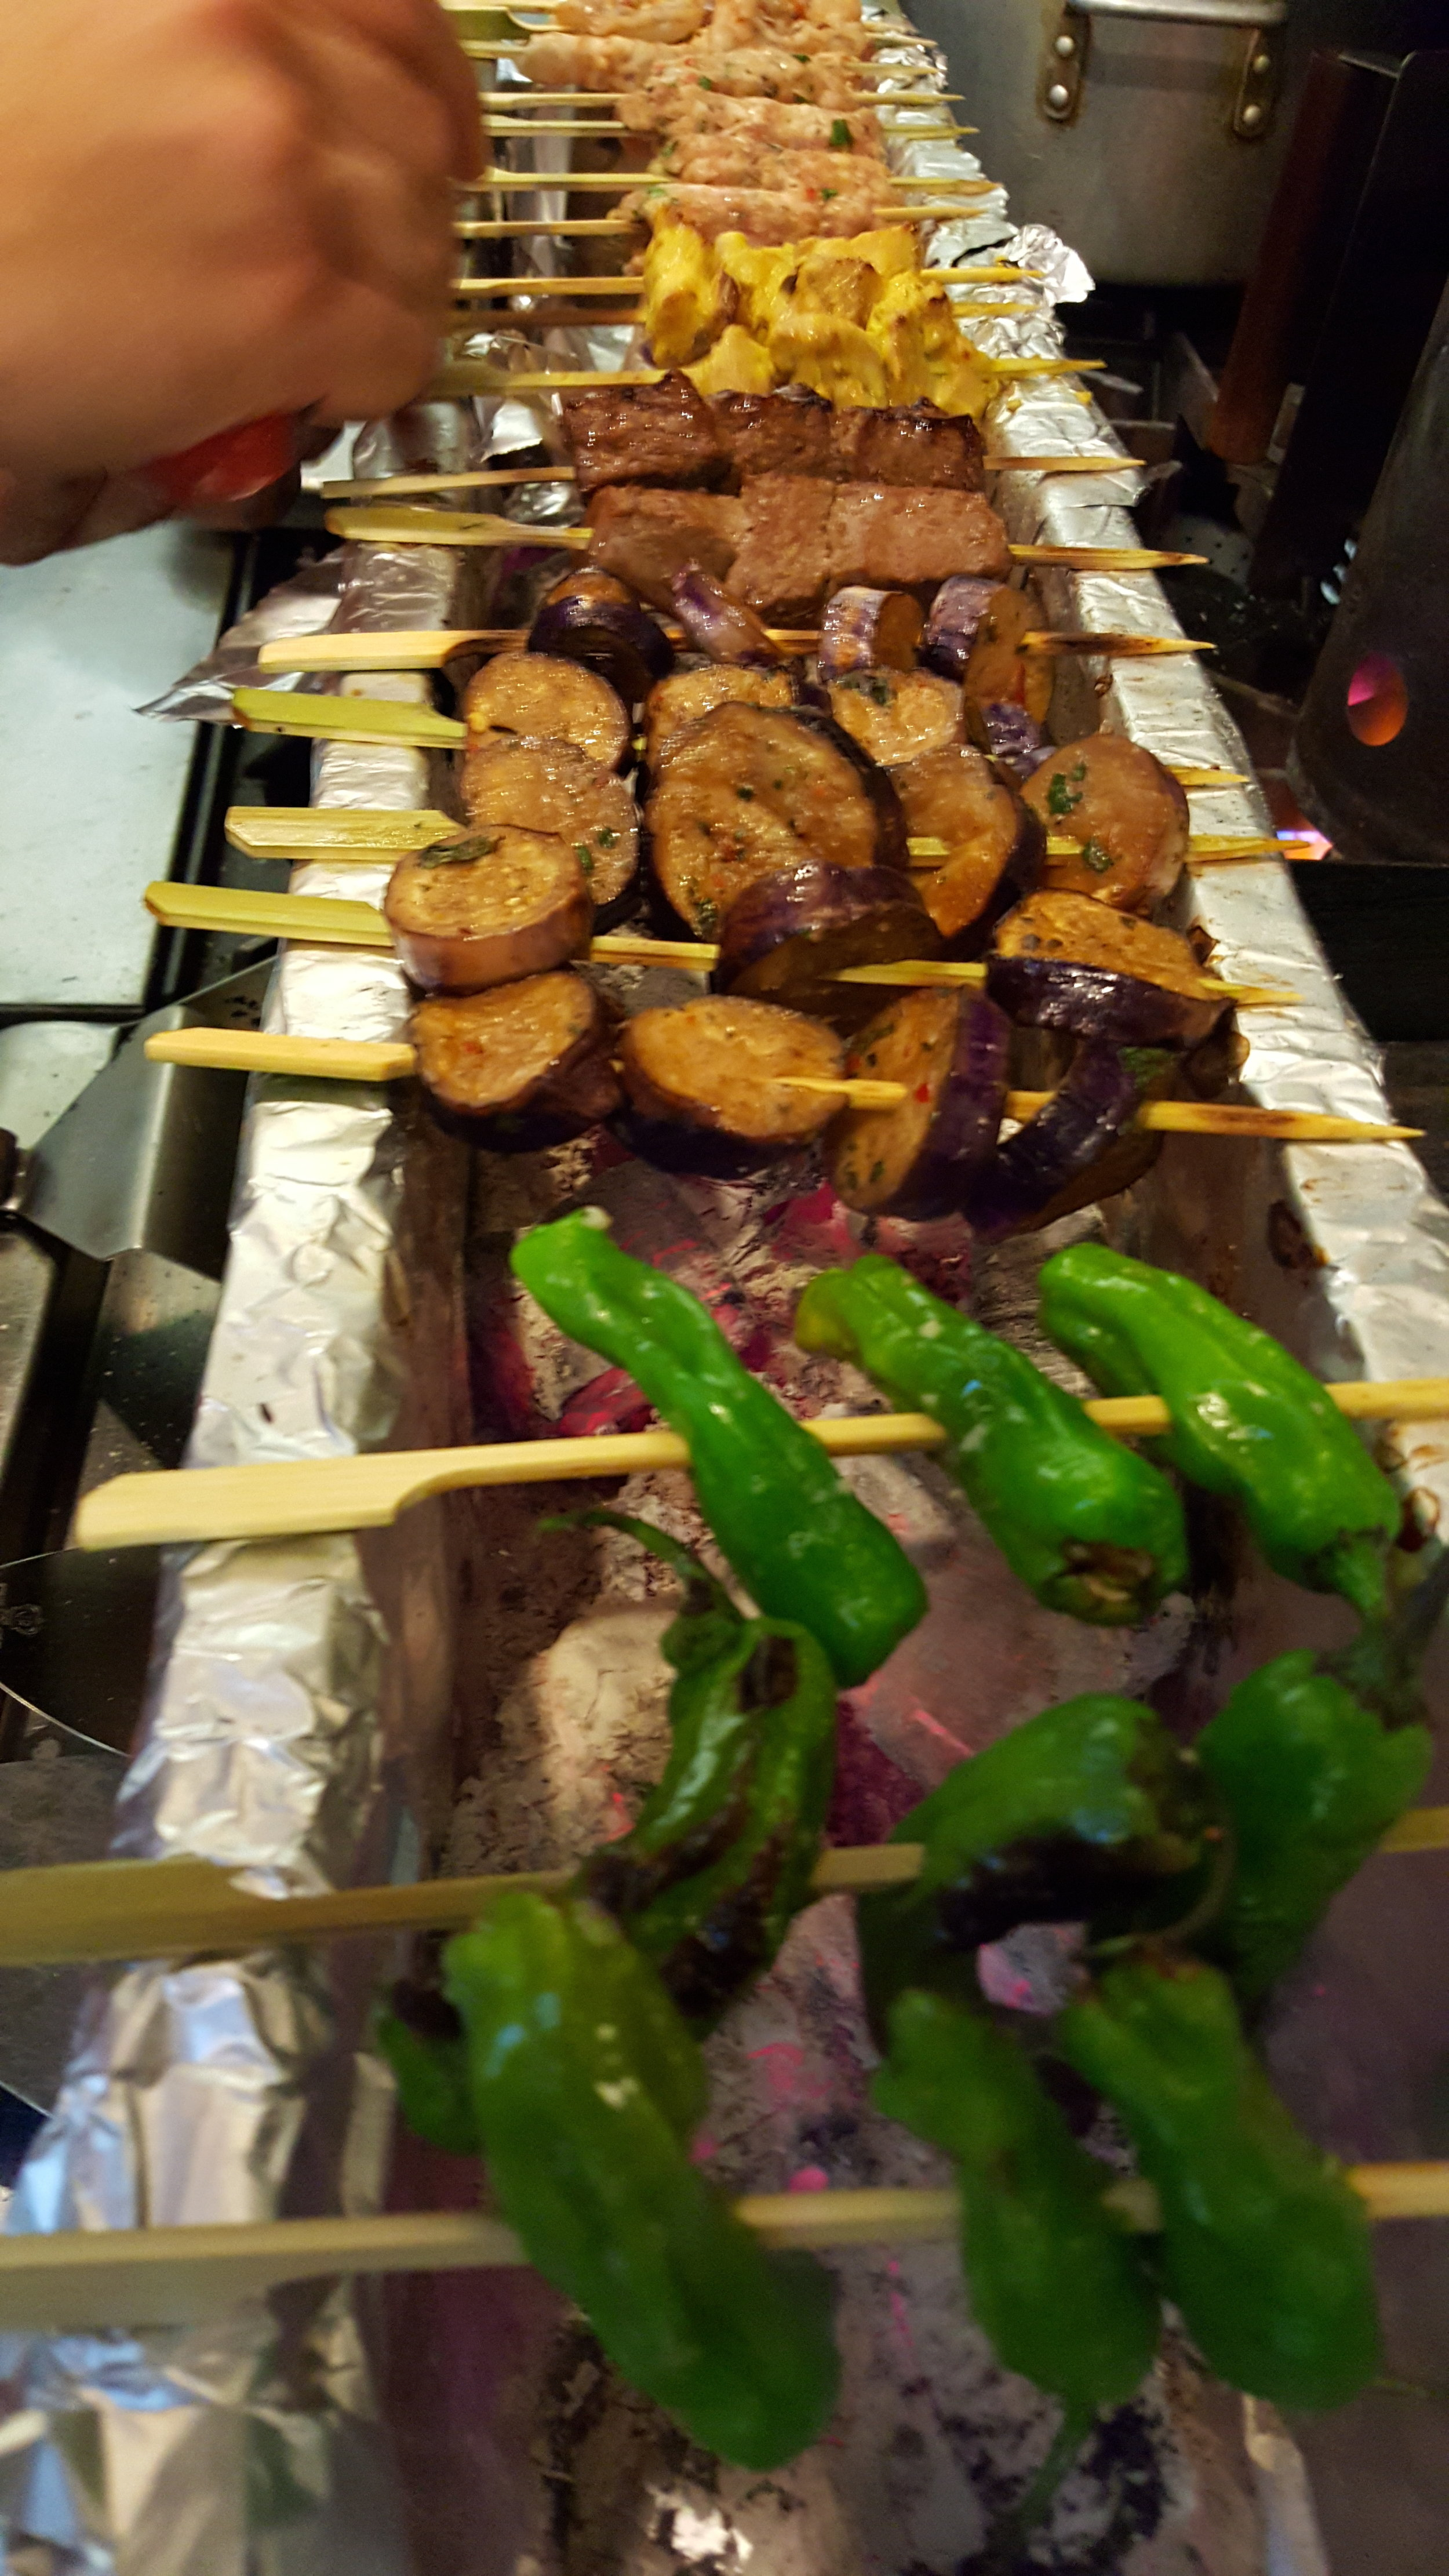 Satays were a big part of the concept, here are some grilling